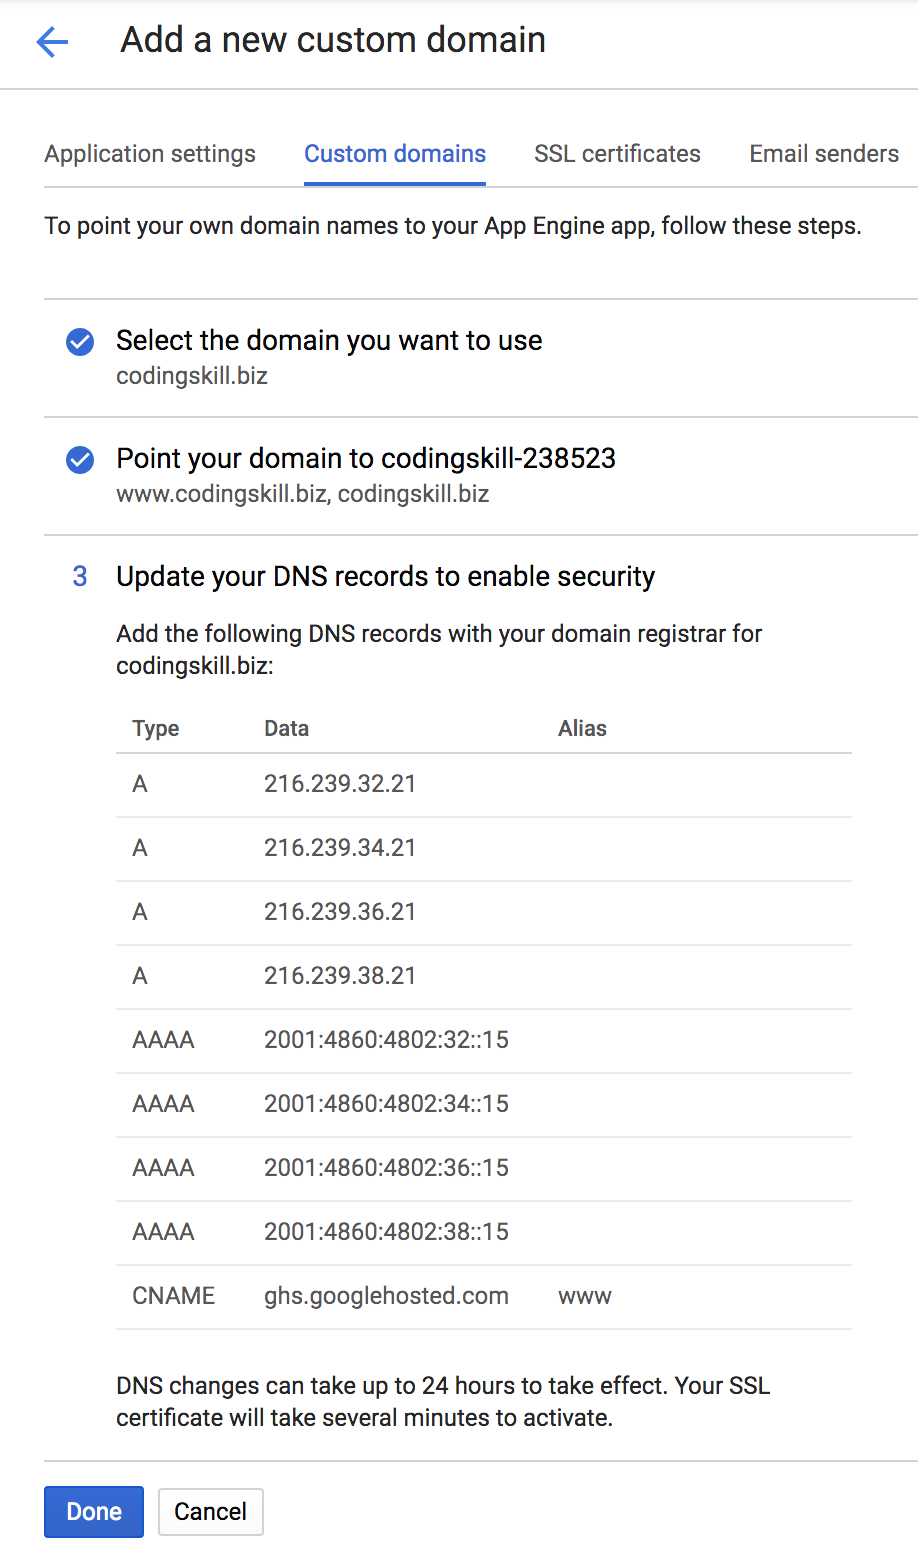 Updating DNS Records